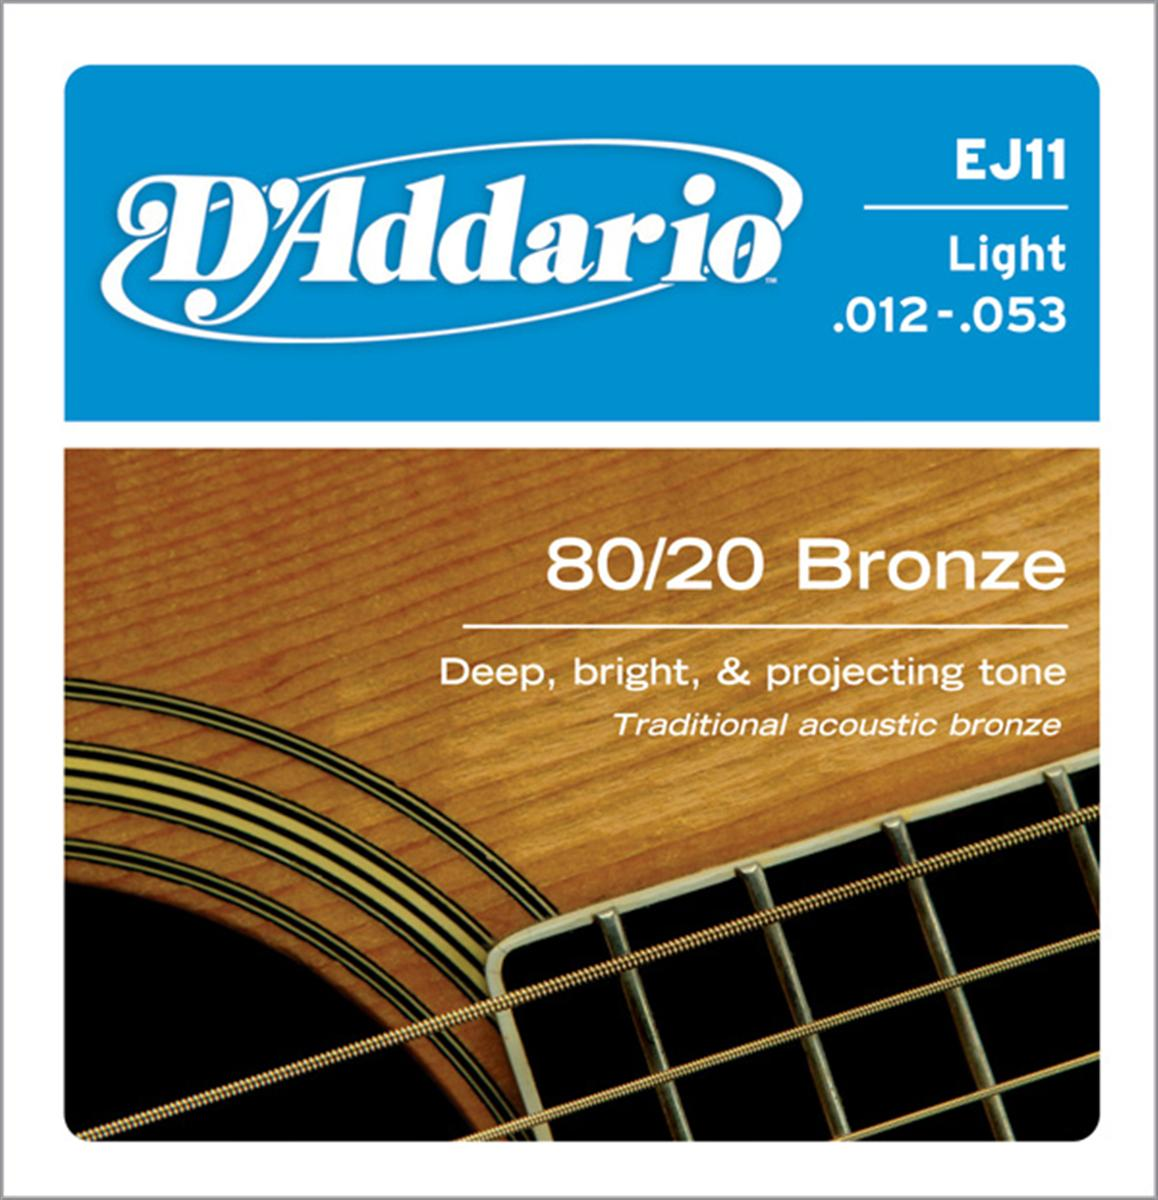 D'Addario EJ11 80/20 Bronze Light Acoustic Guitar Strings 12-53